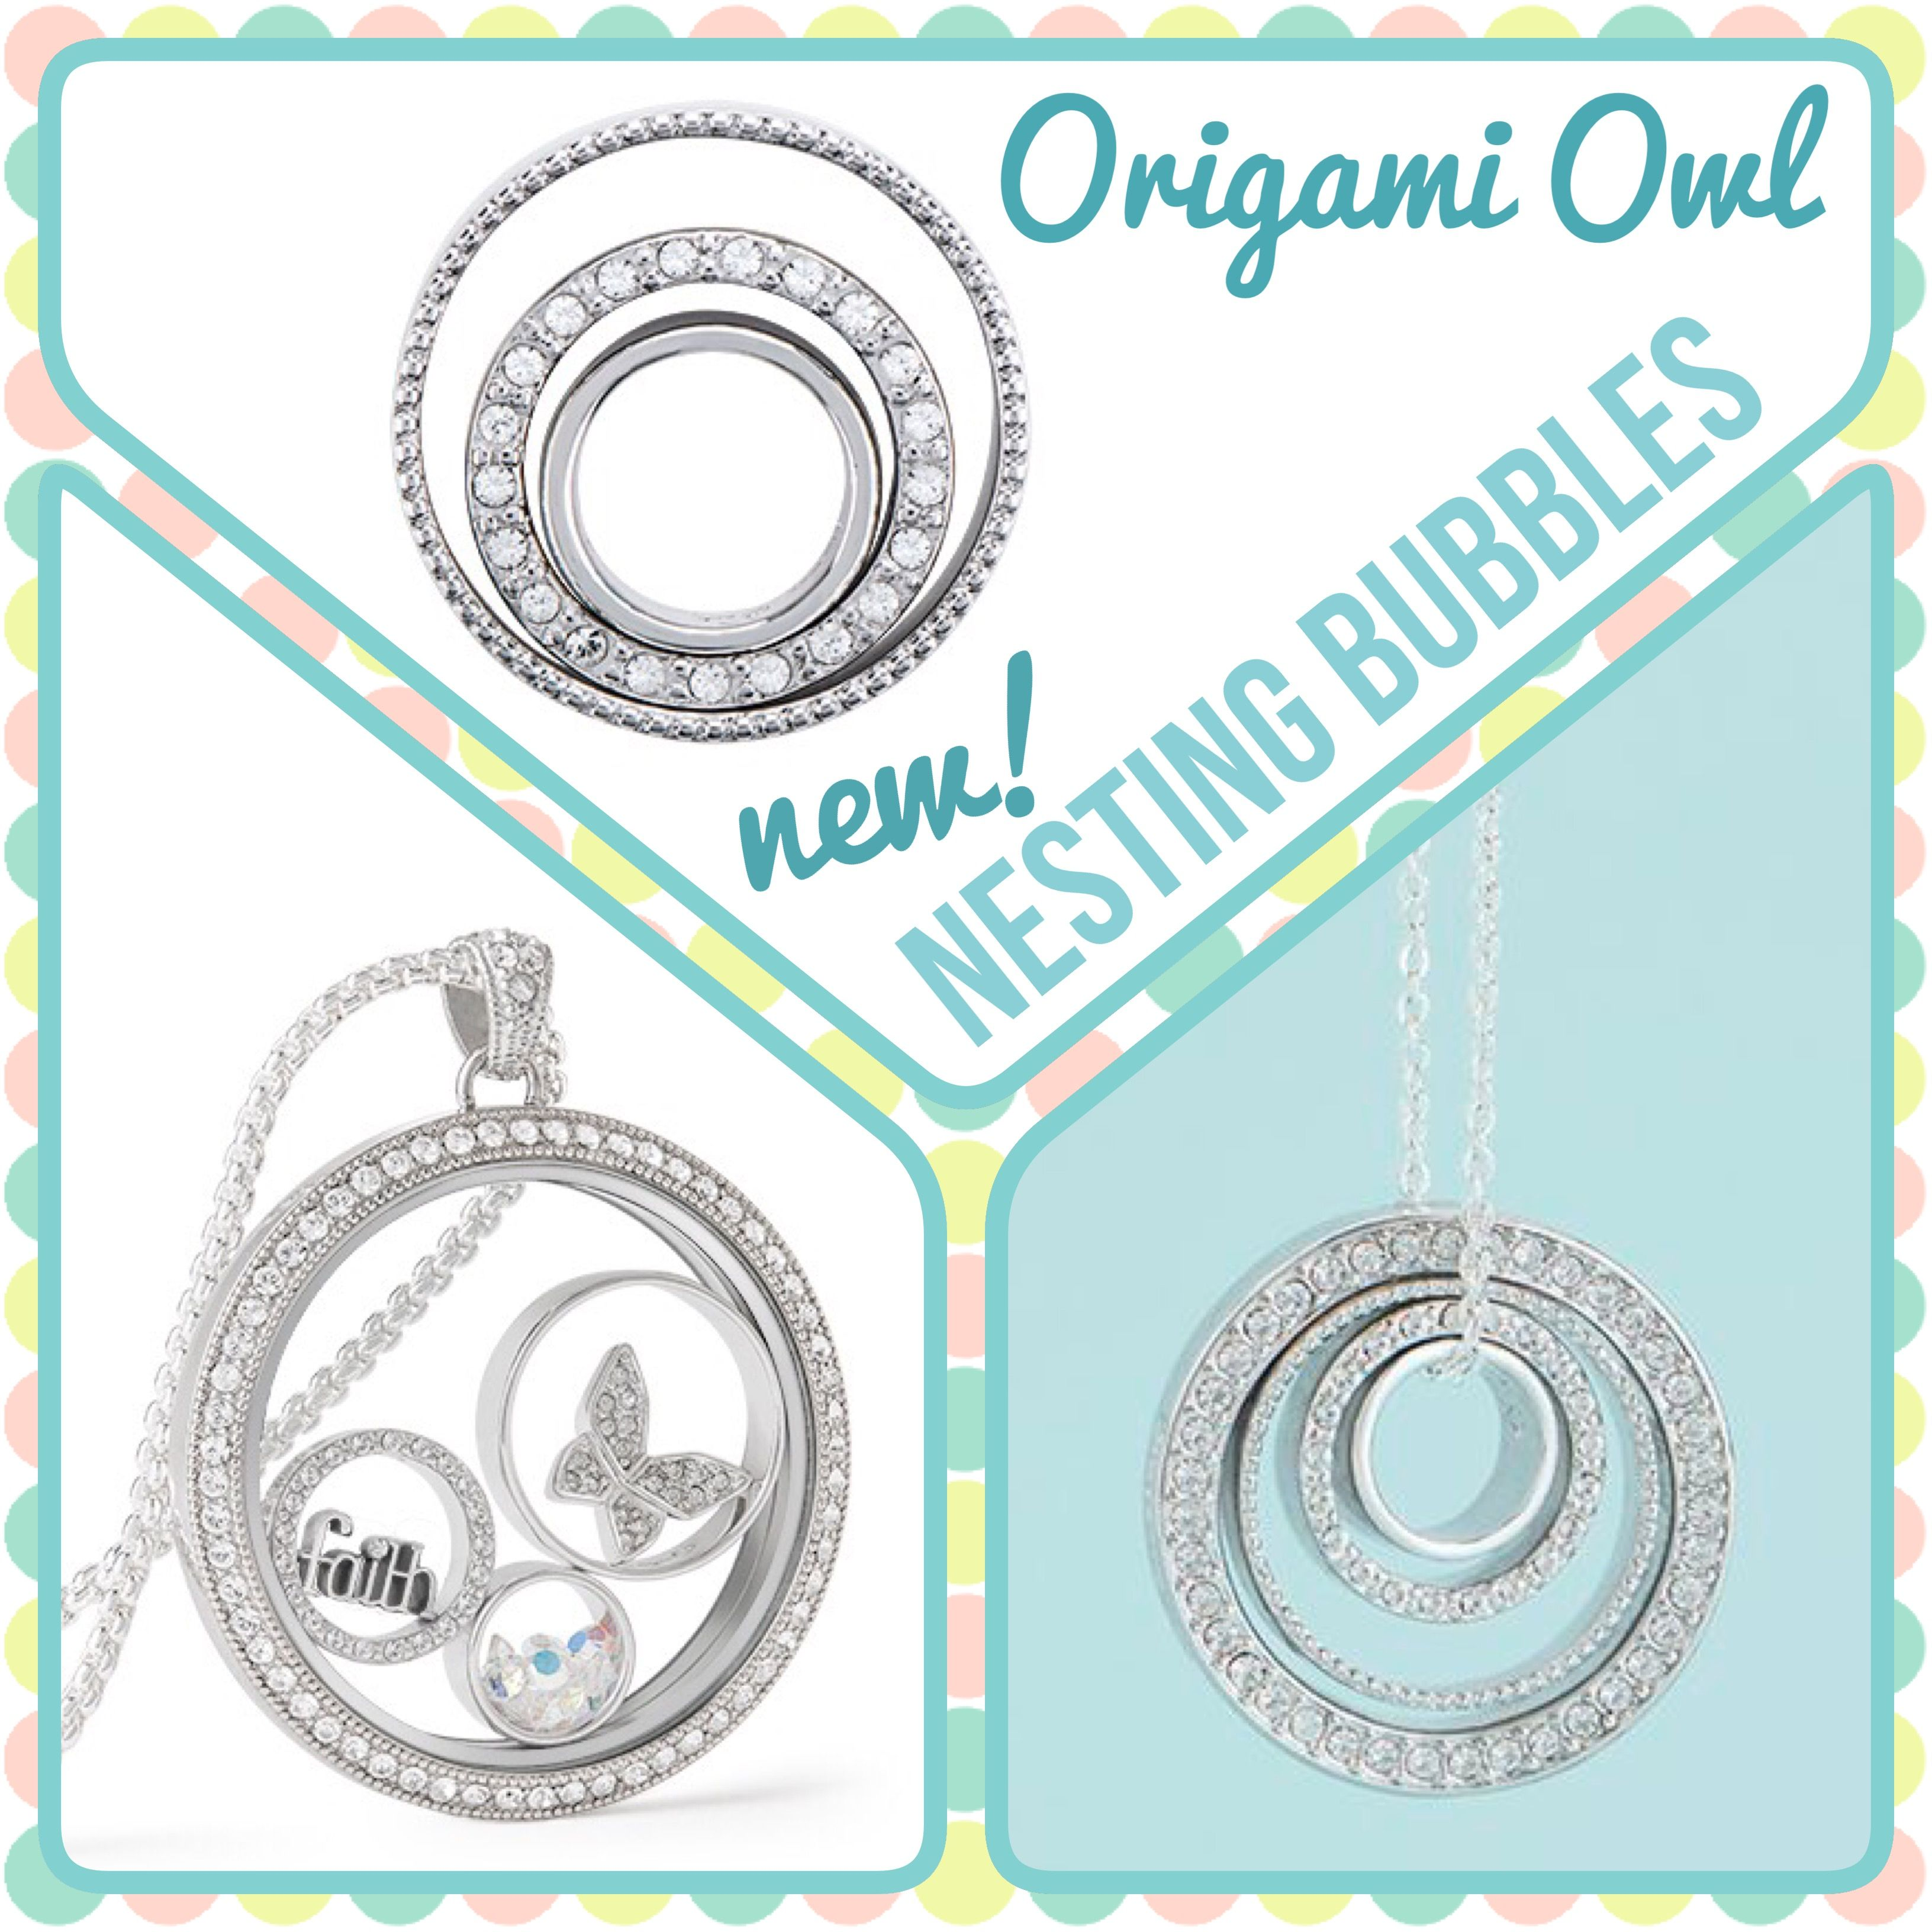 Origami owl nesting bubbles pictured here is our legacy locket origami owl fall jeuxipadfo Images